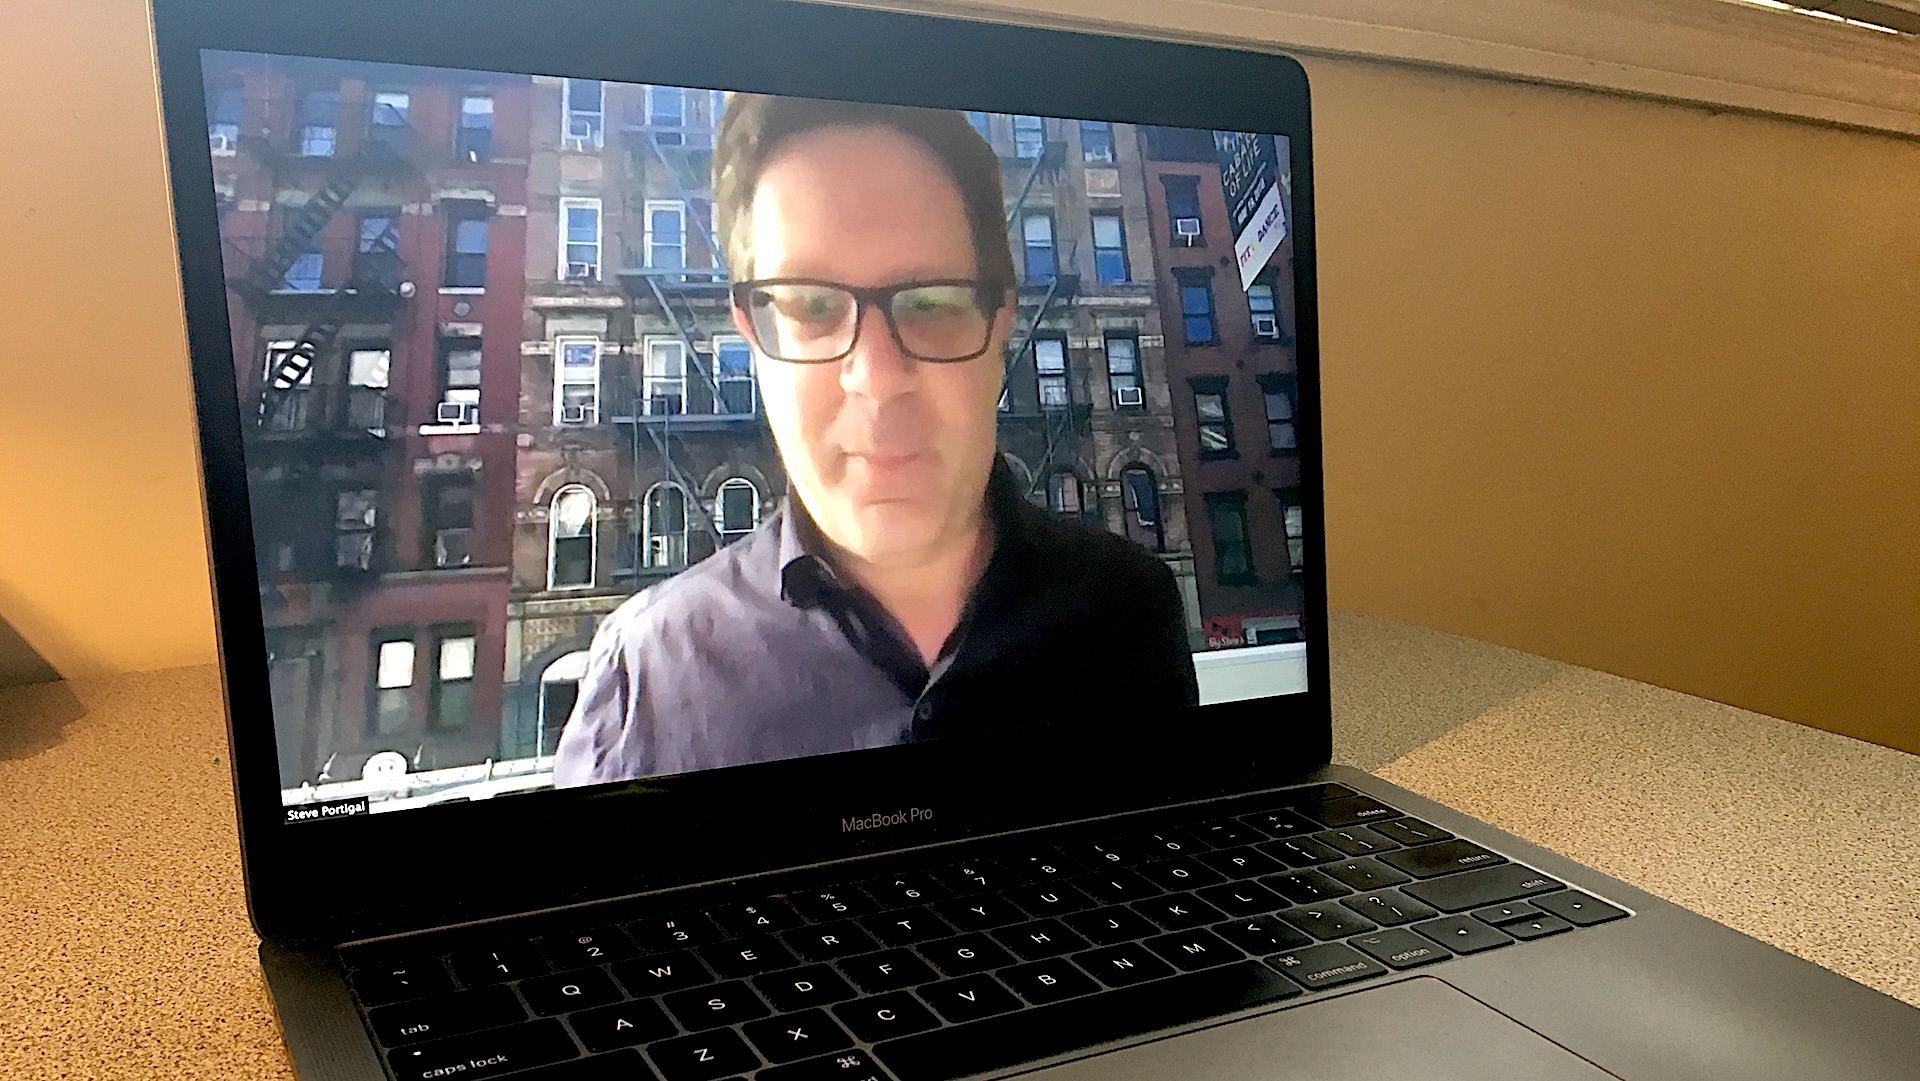 UX researcher Steve Portigal on a laptop screen.